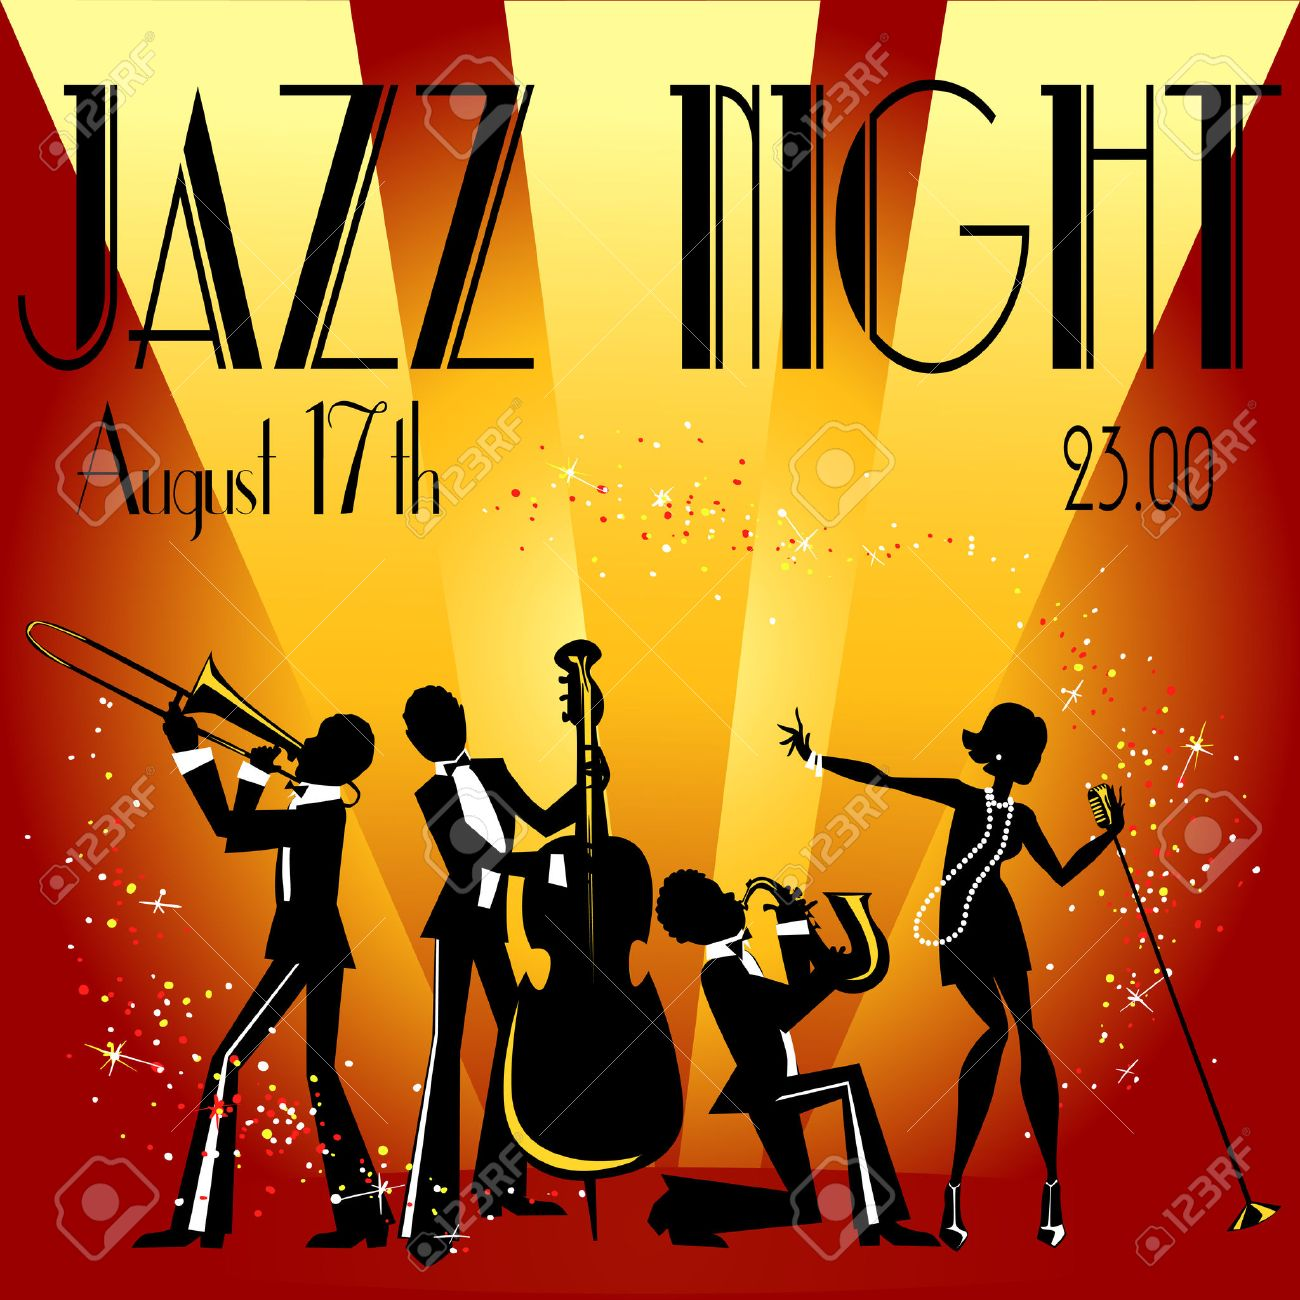 Abstract Jazz Band, Jazz Music Party Invitation Design, Vector ...